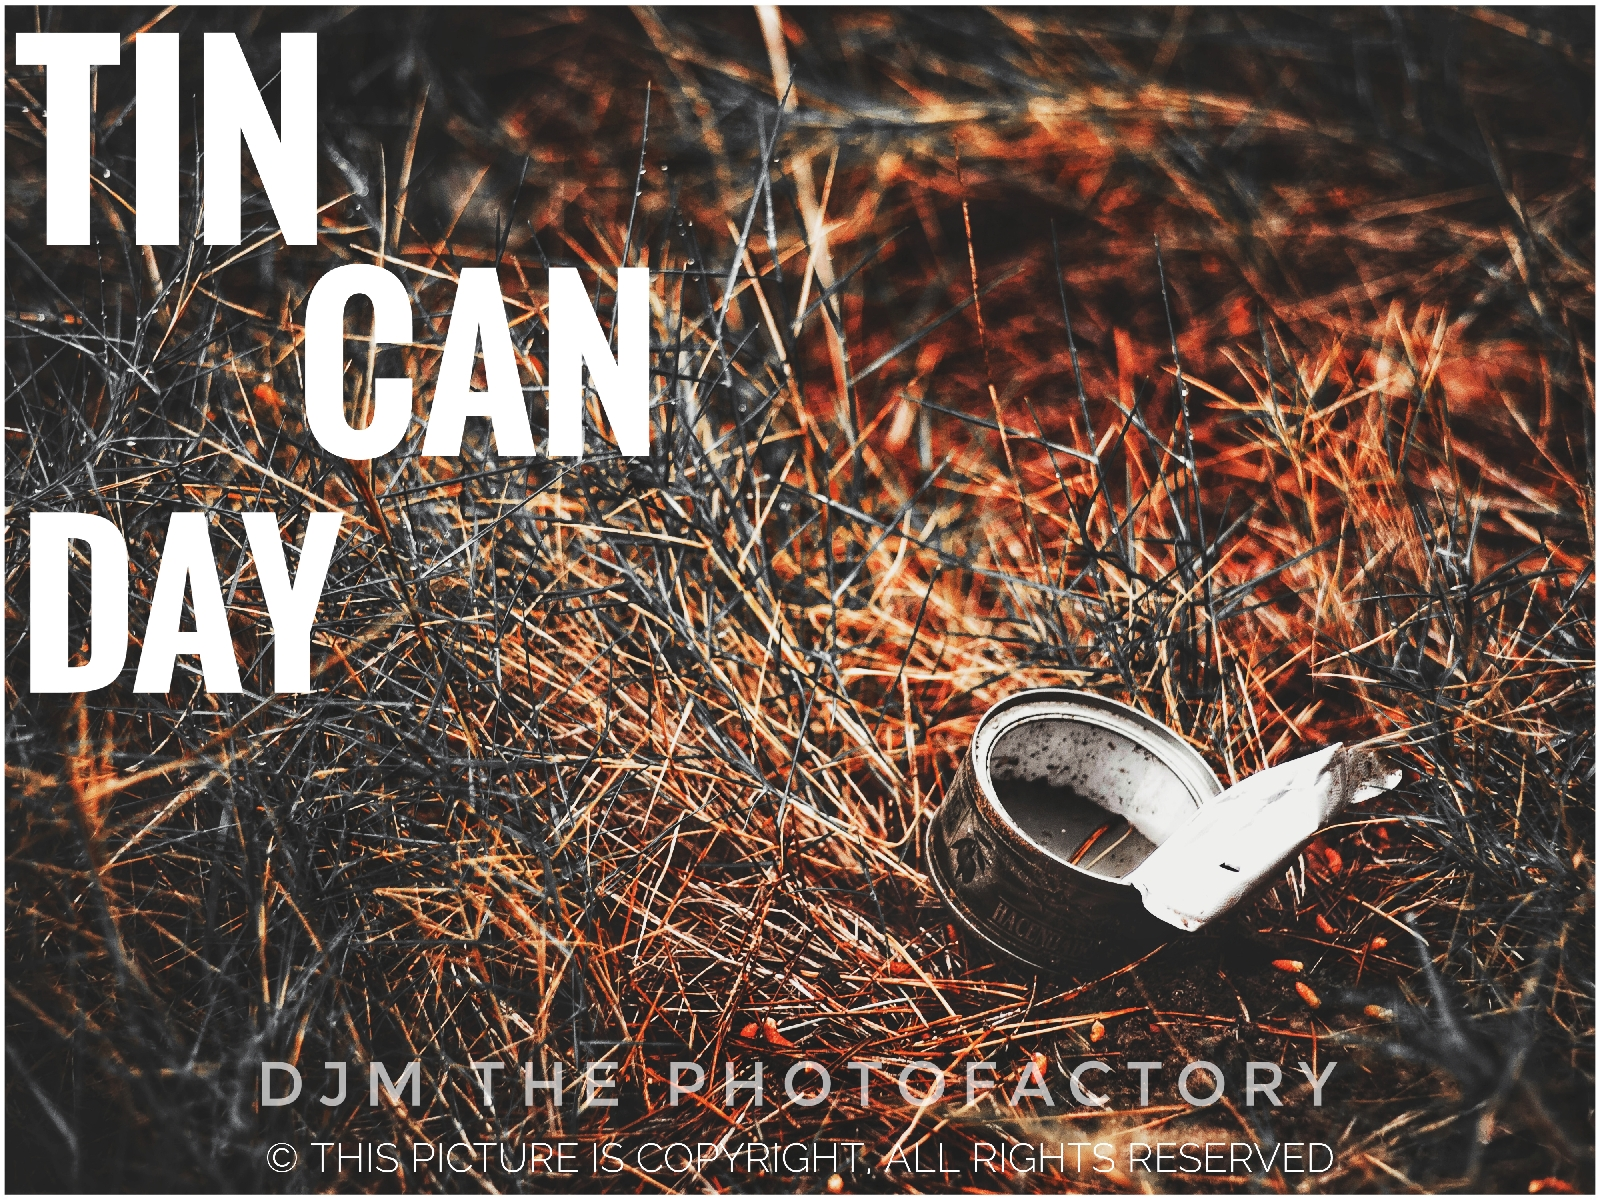 history of national tin can day 2020 wishes images status.